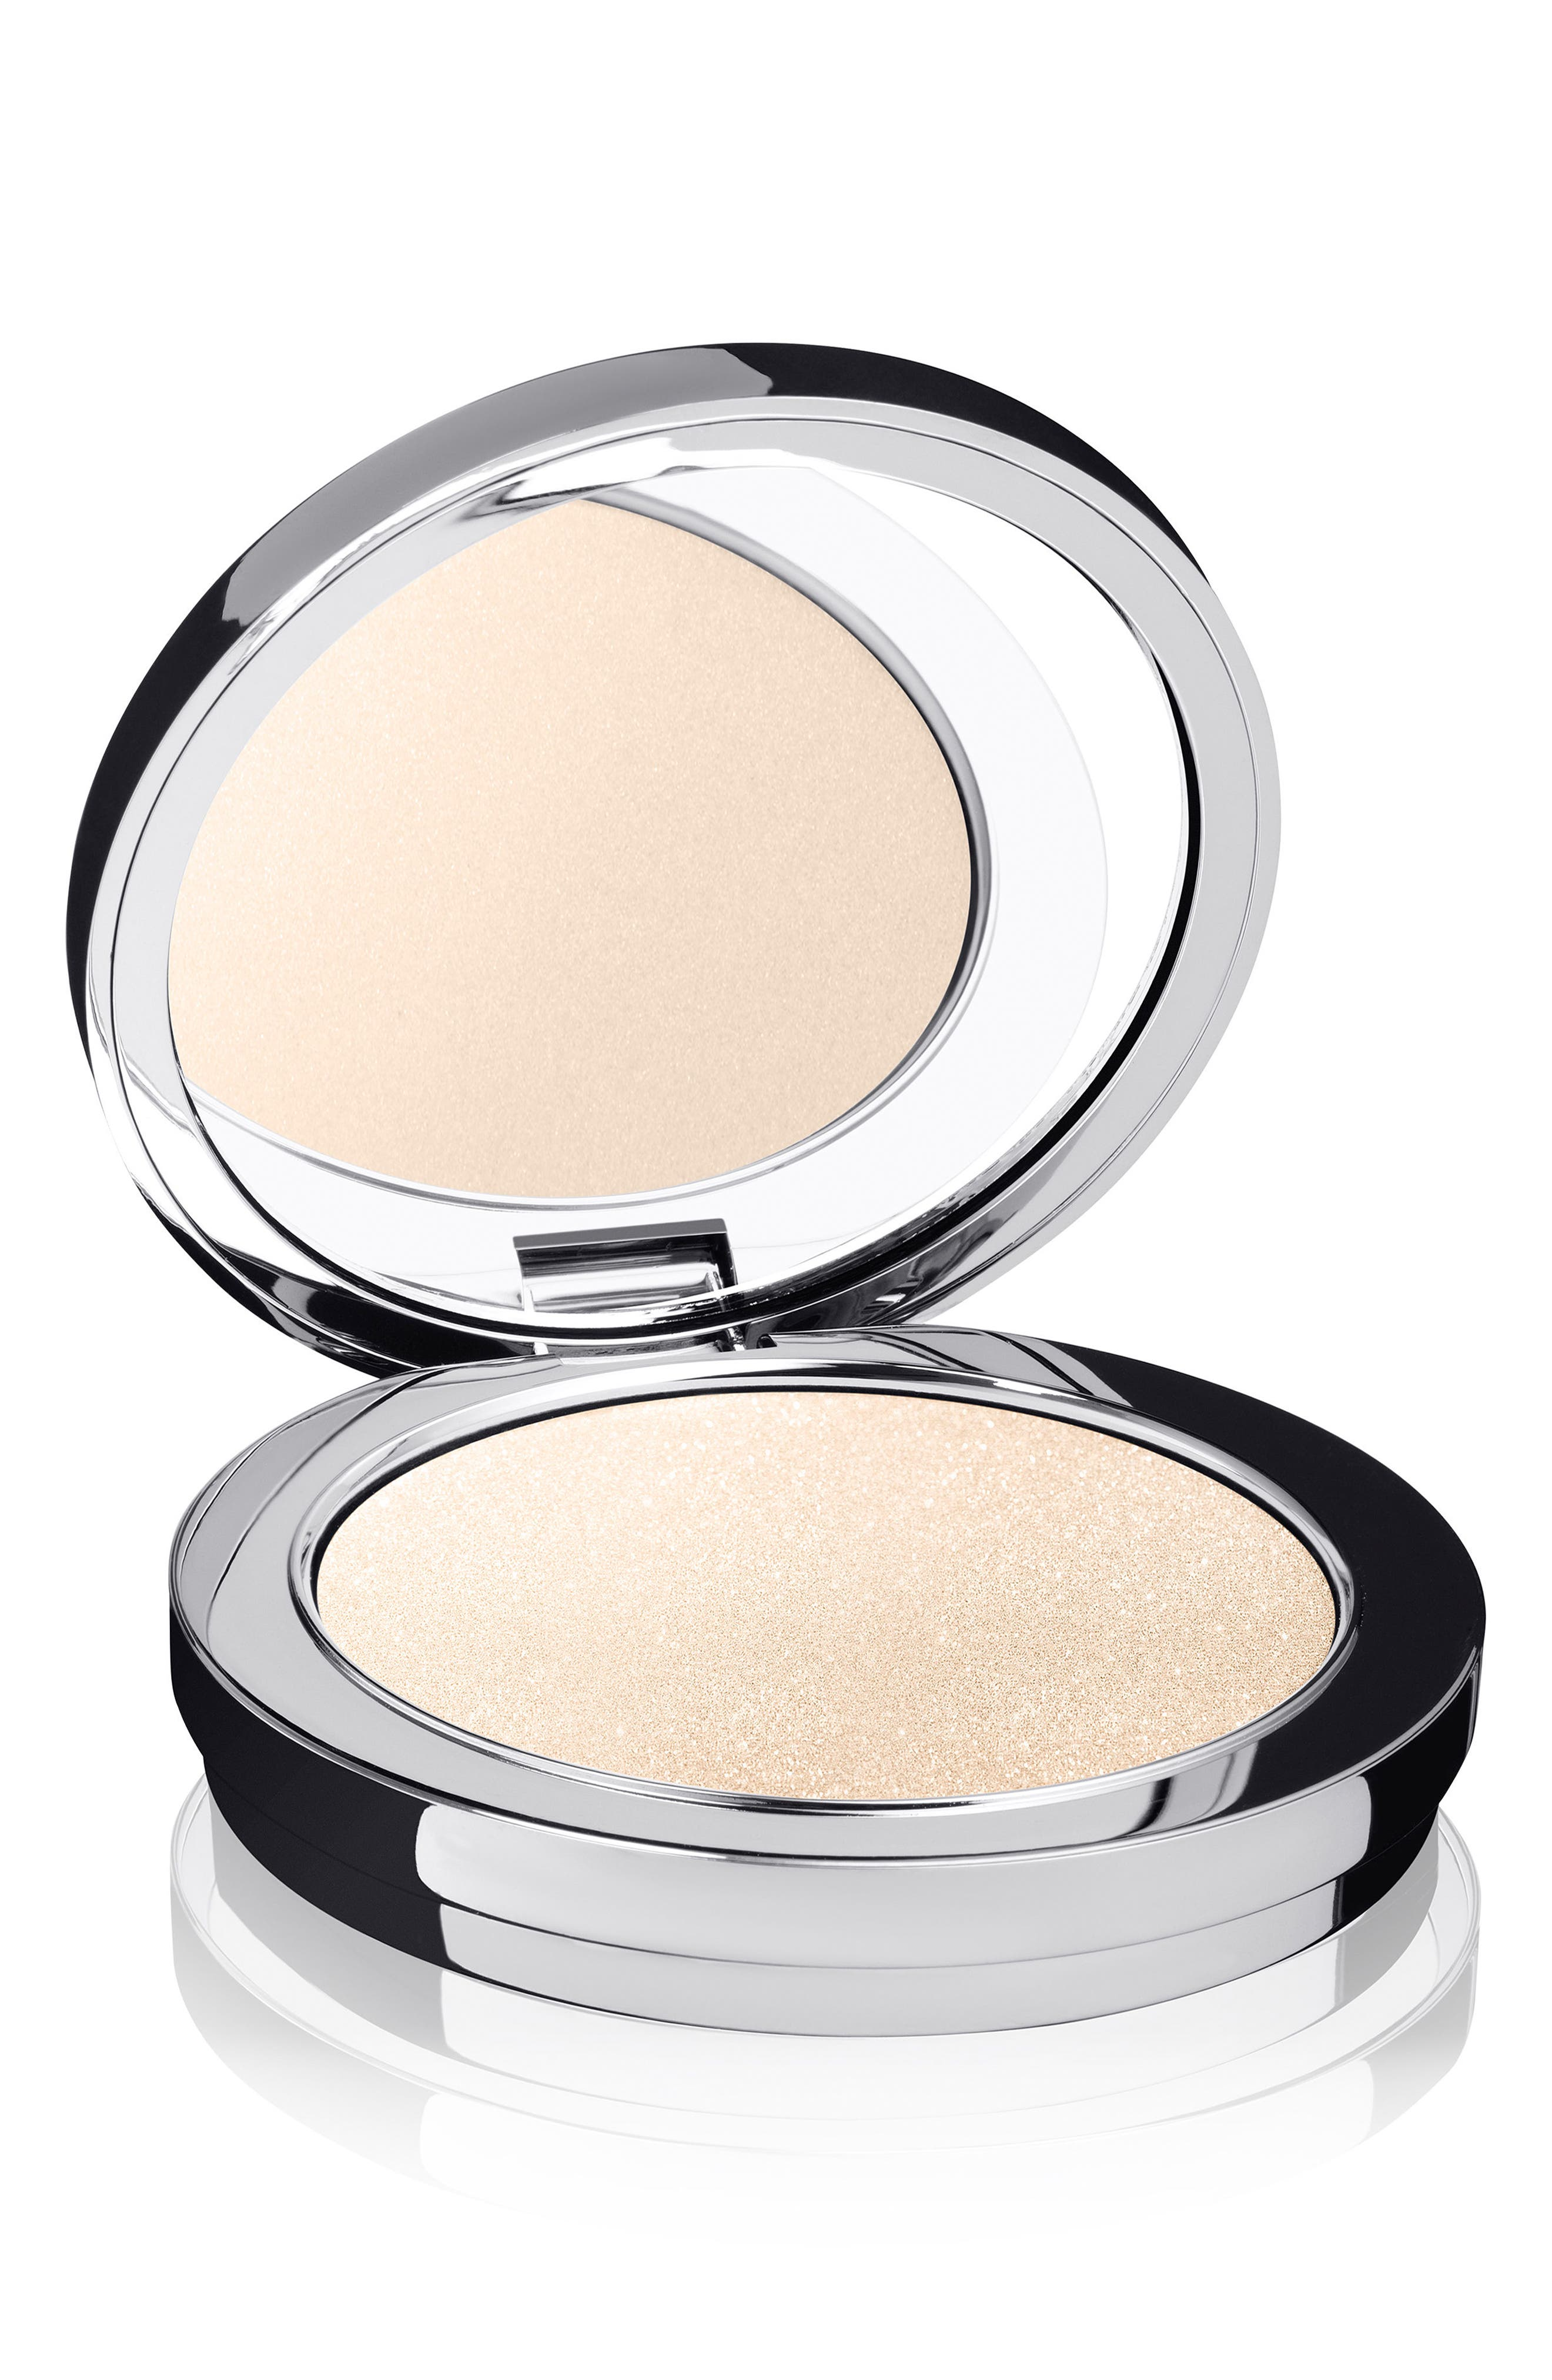 Alternate Image 1 Selected - SPACE.NK.apothecary Rodial Instaglam™ Deluxe Highlighting Powder Compact